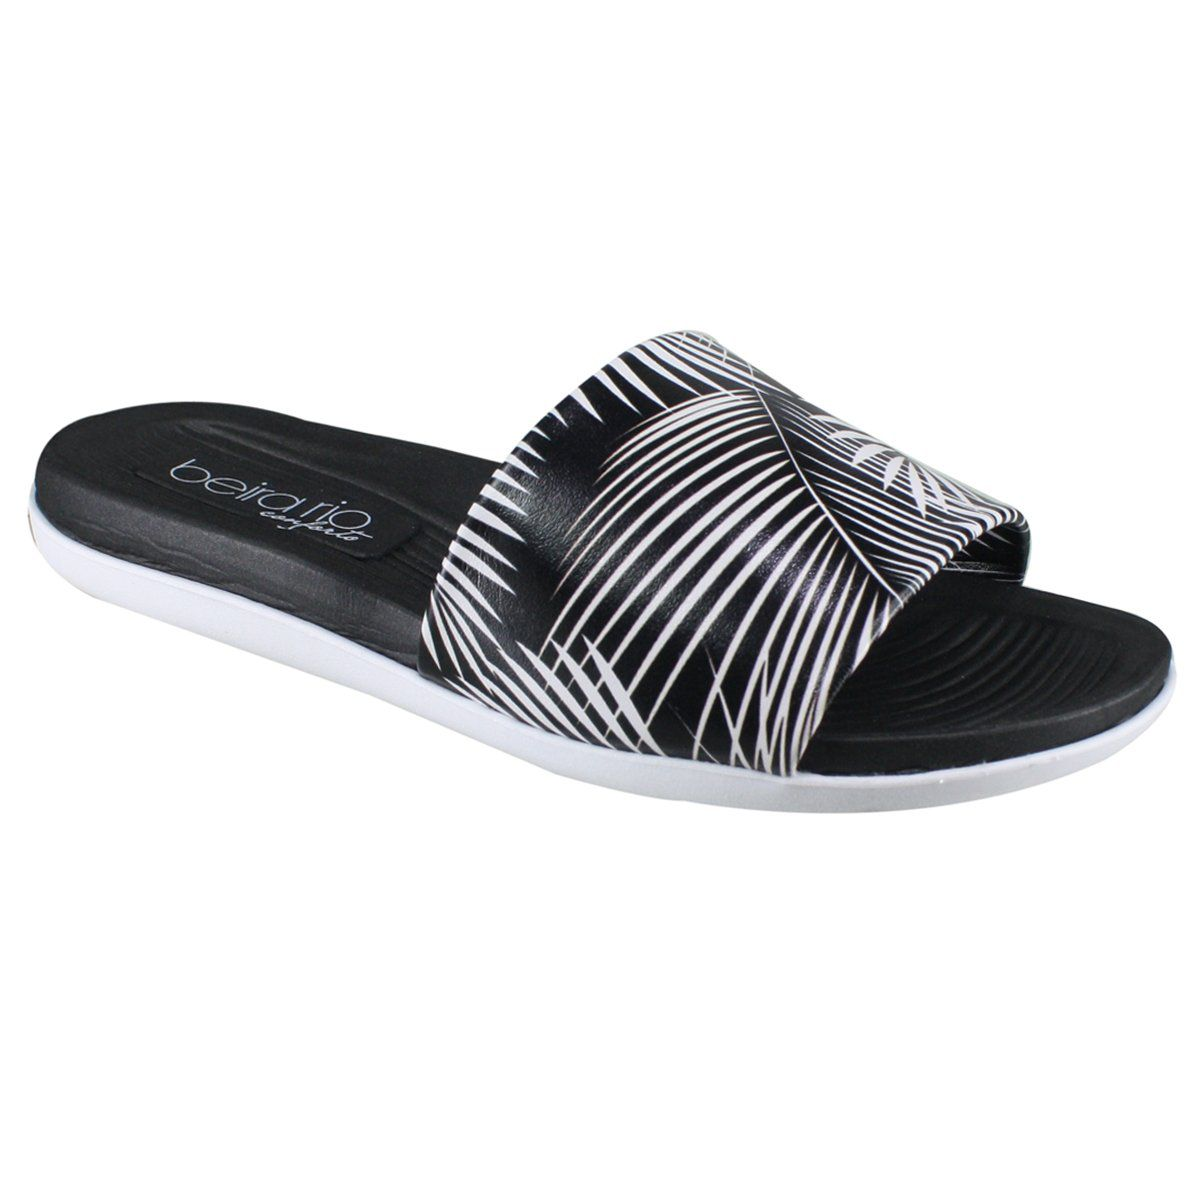 Chinelo Slide Beira Rio Preto Tropical